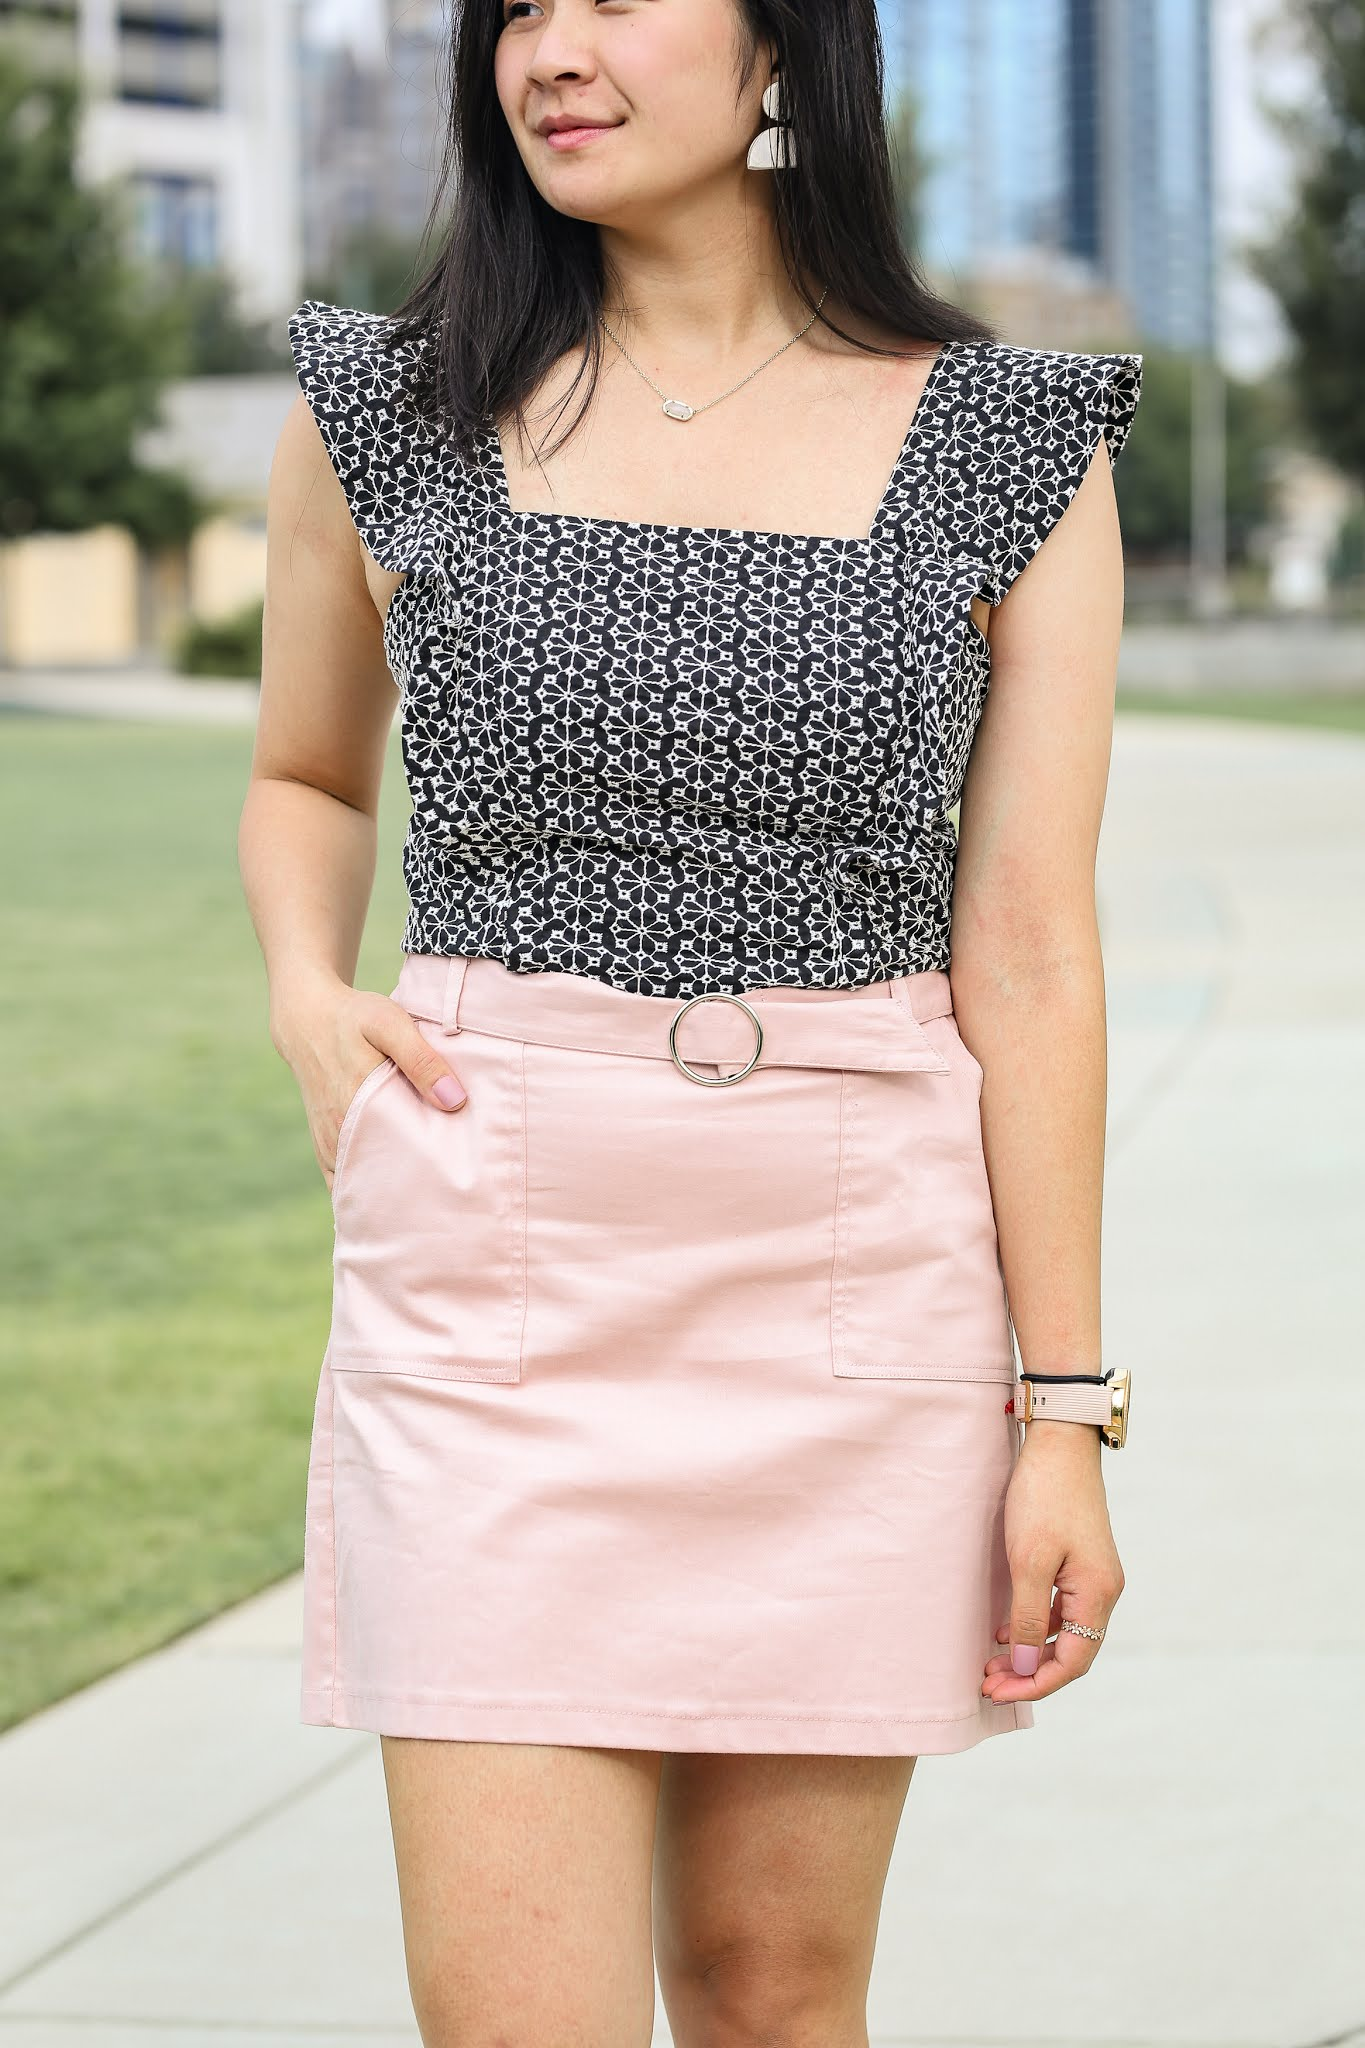 Black and White Crop Top - Wal-Mart